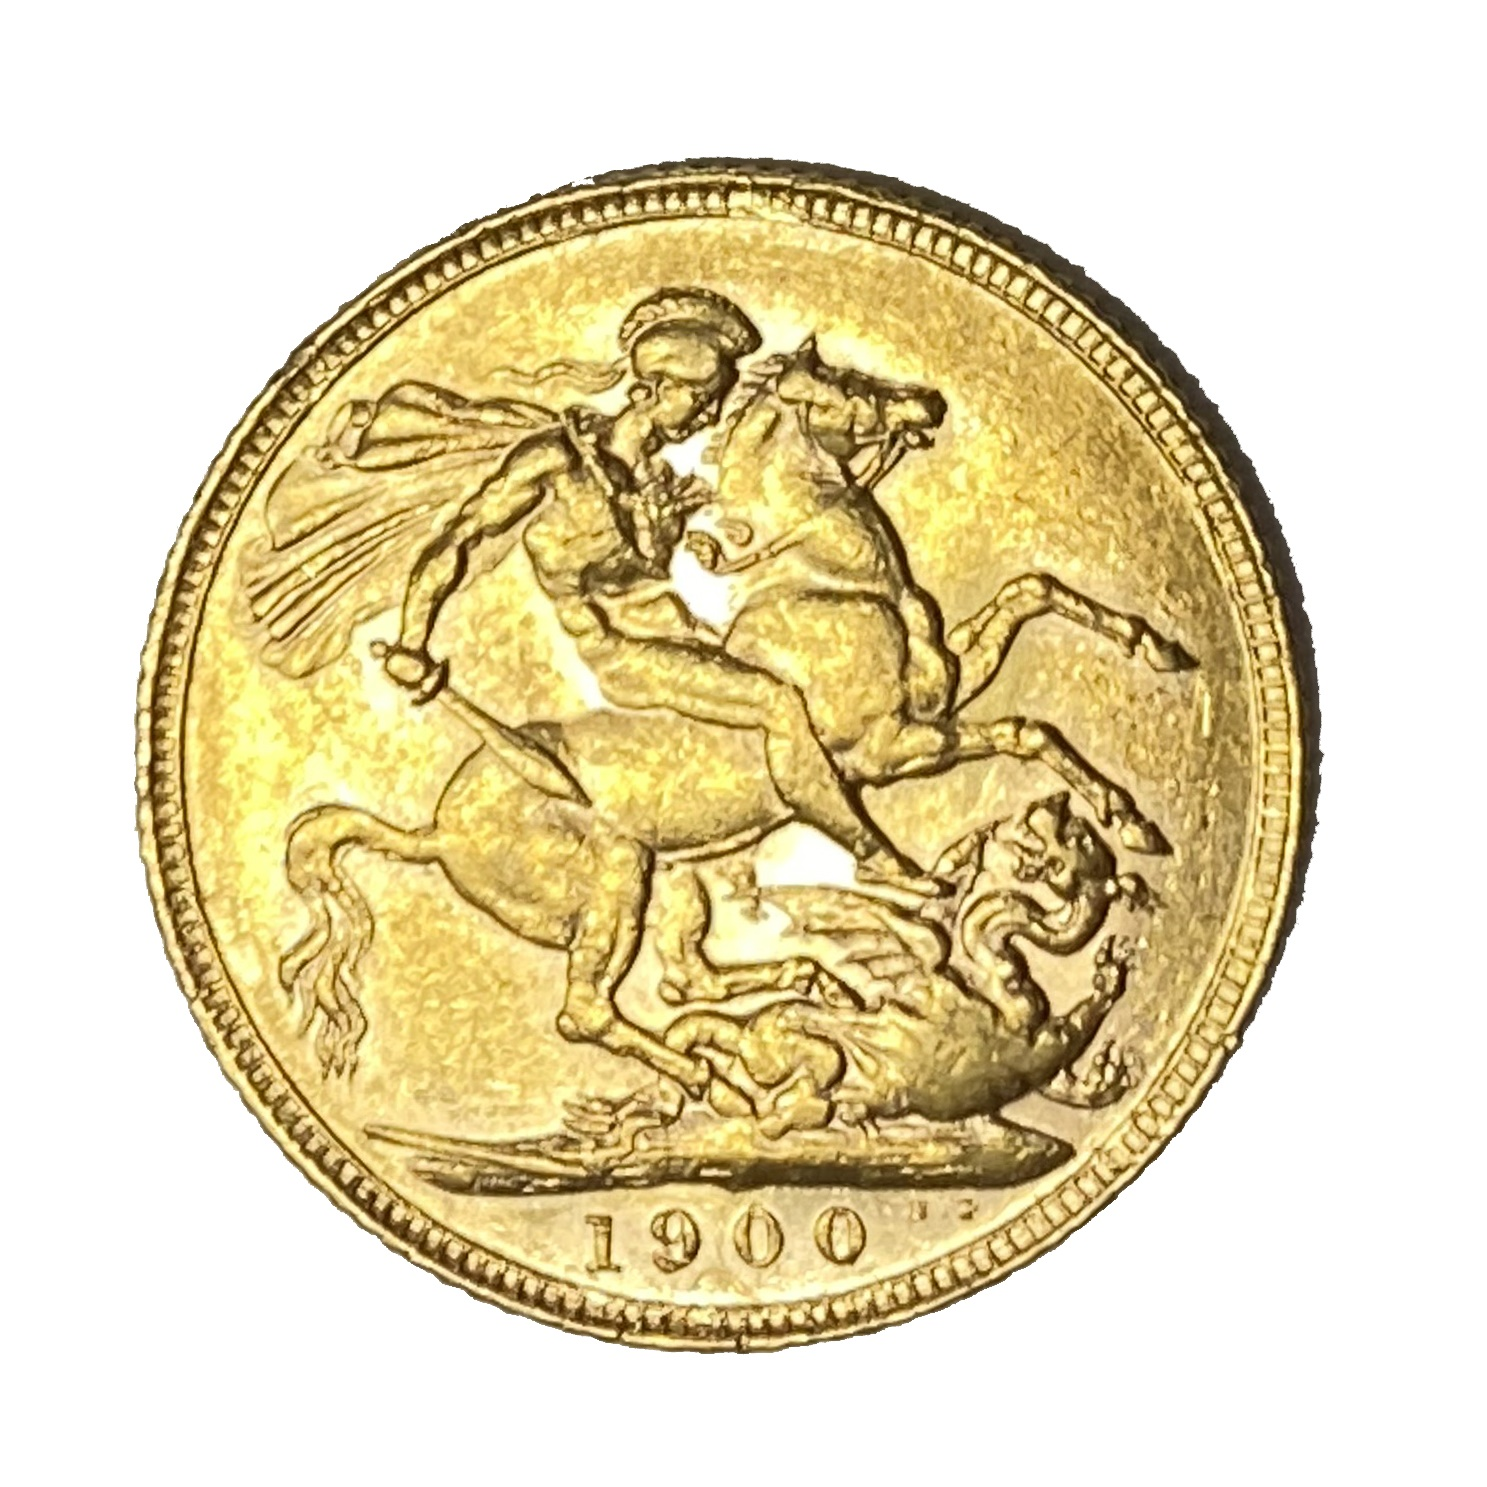 Queen Victoria gold Sovereign coin, 1900 - Image 2 of 2